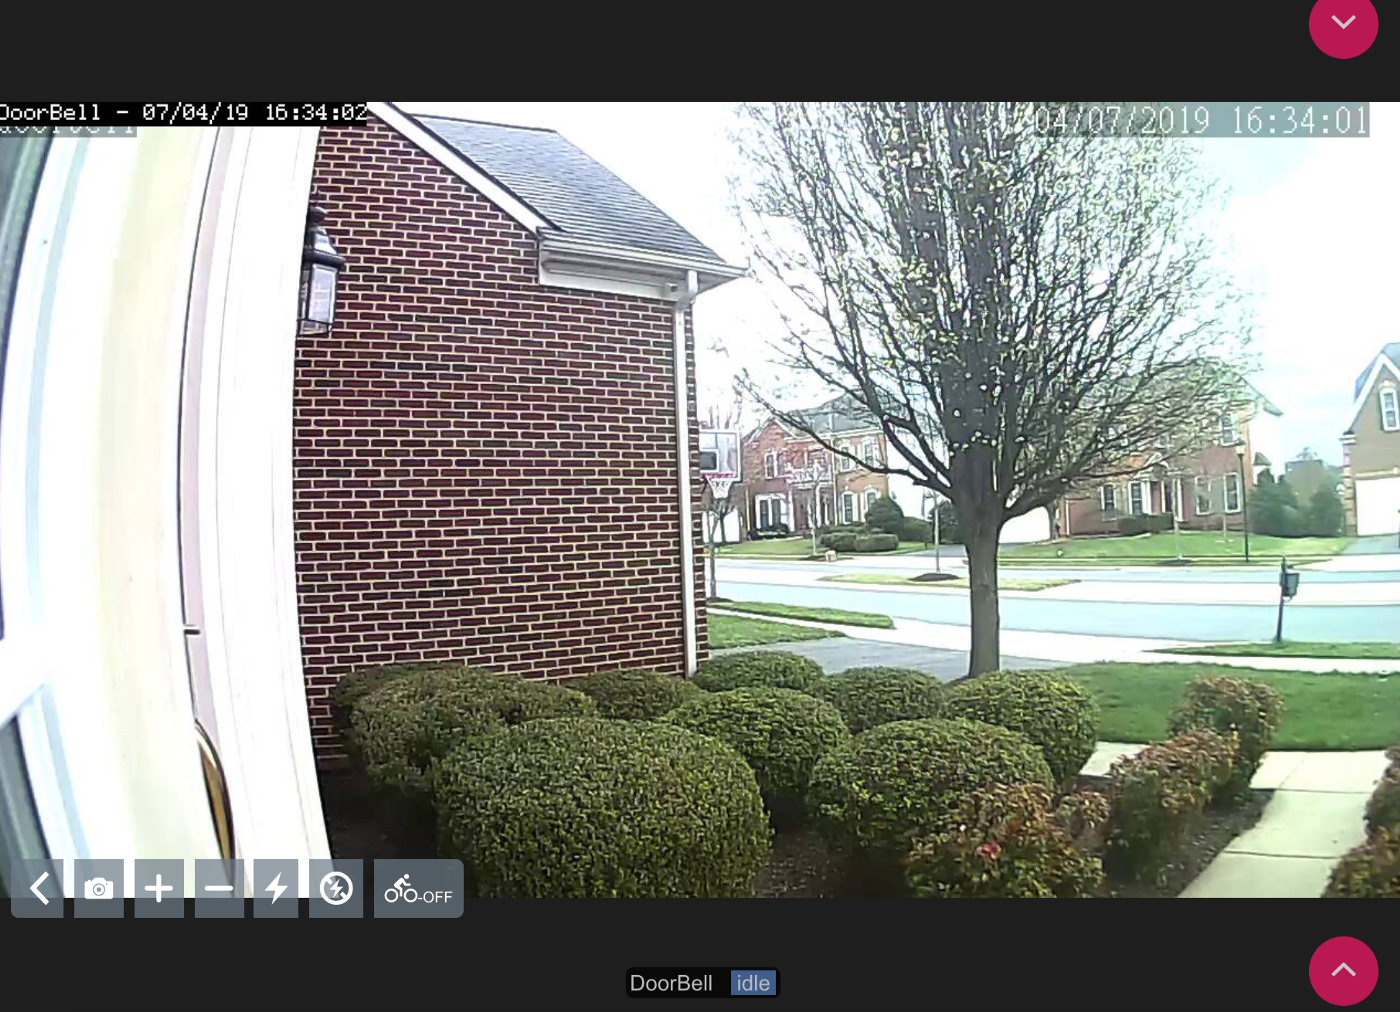 DIY Doorbell face recognition with ZoneMinder and dbell